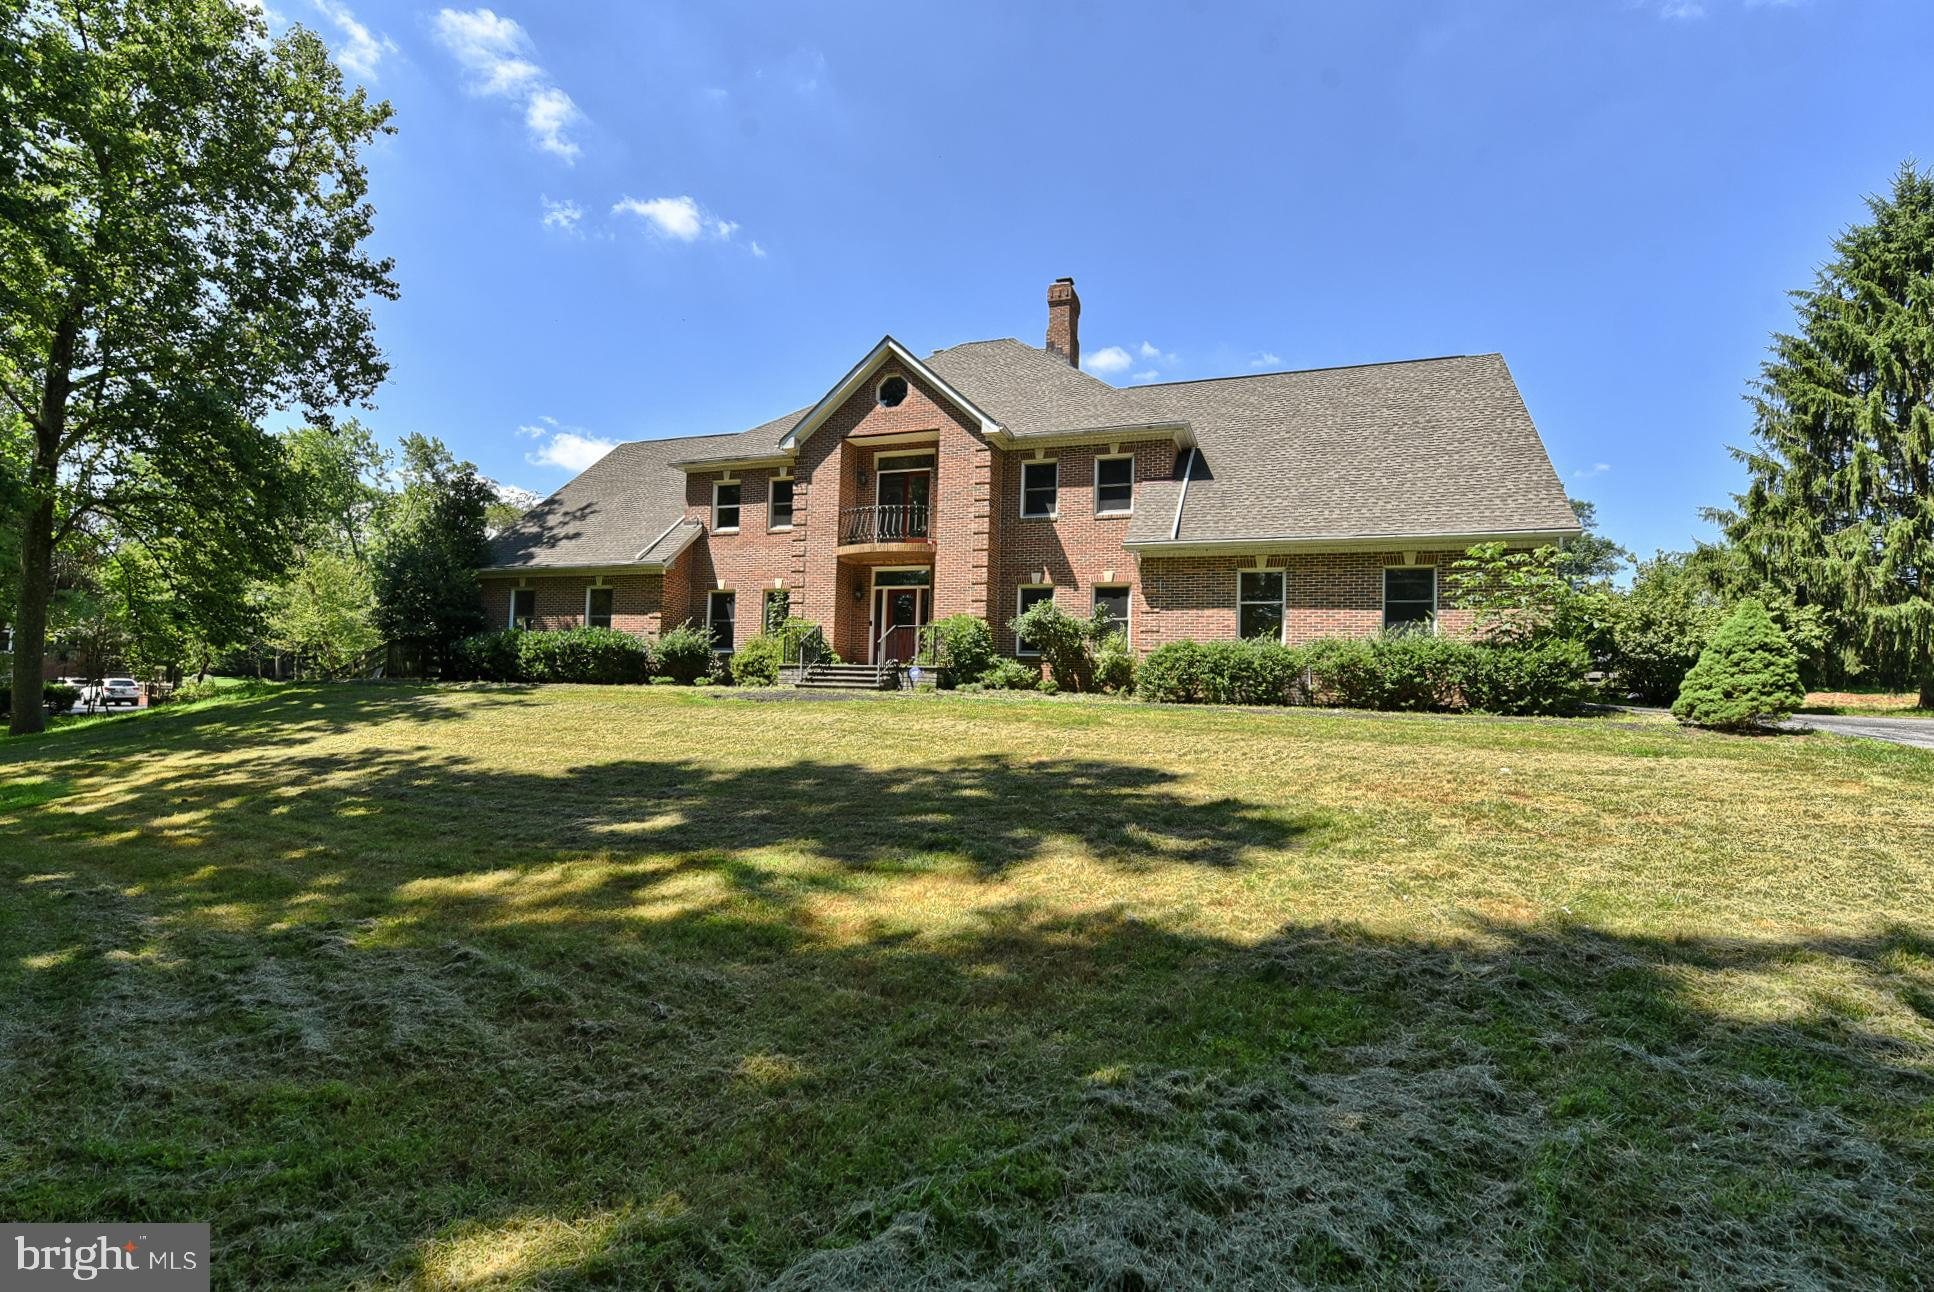 This must see 5 bedroom 5 full bath 2-car garage stately all brick colonial on prime 3.49 acre cal-d